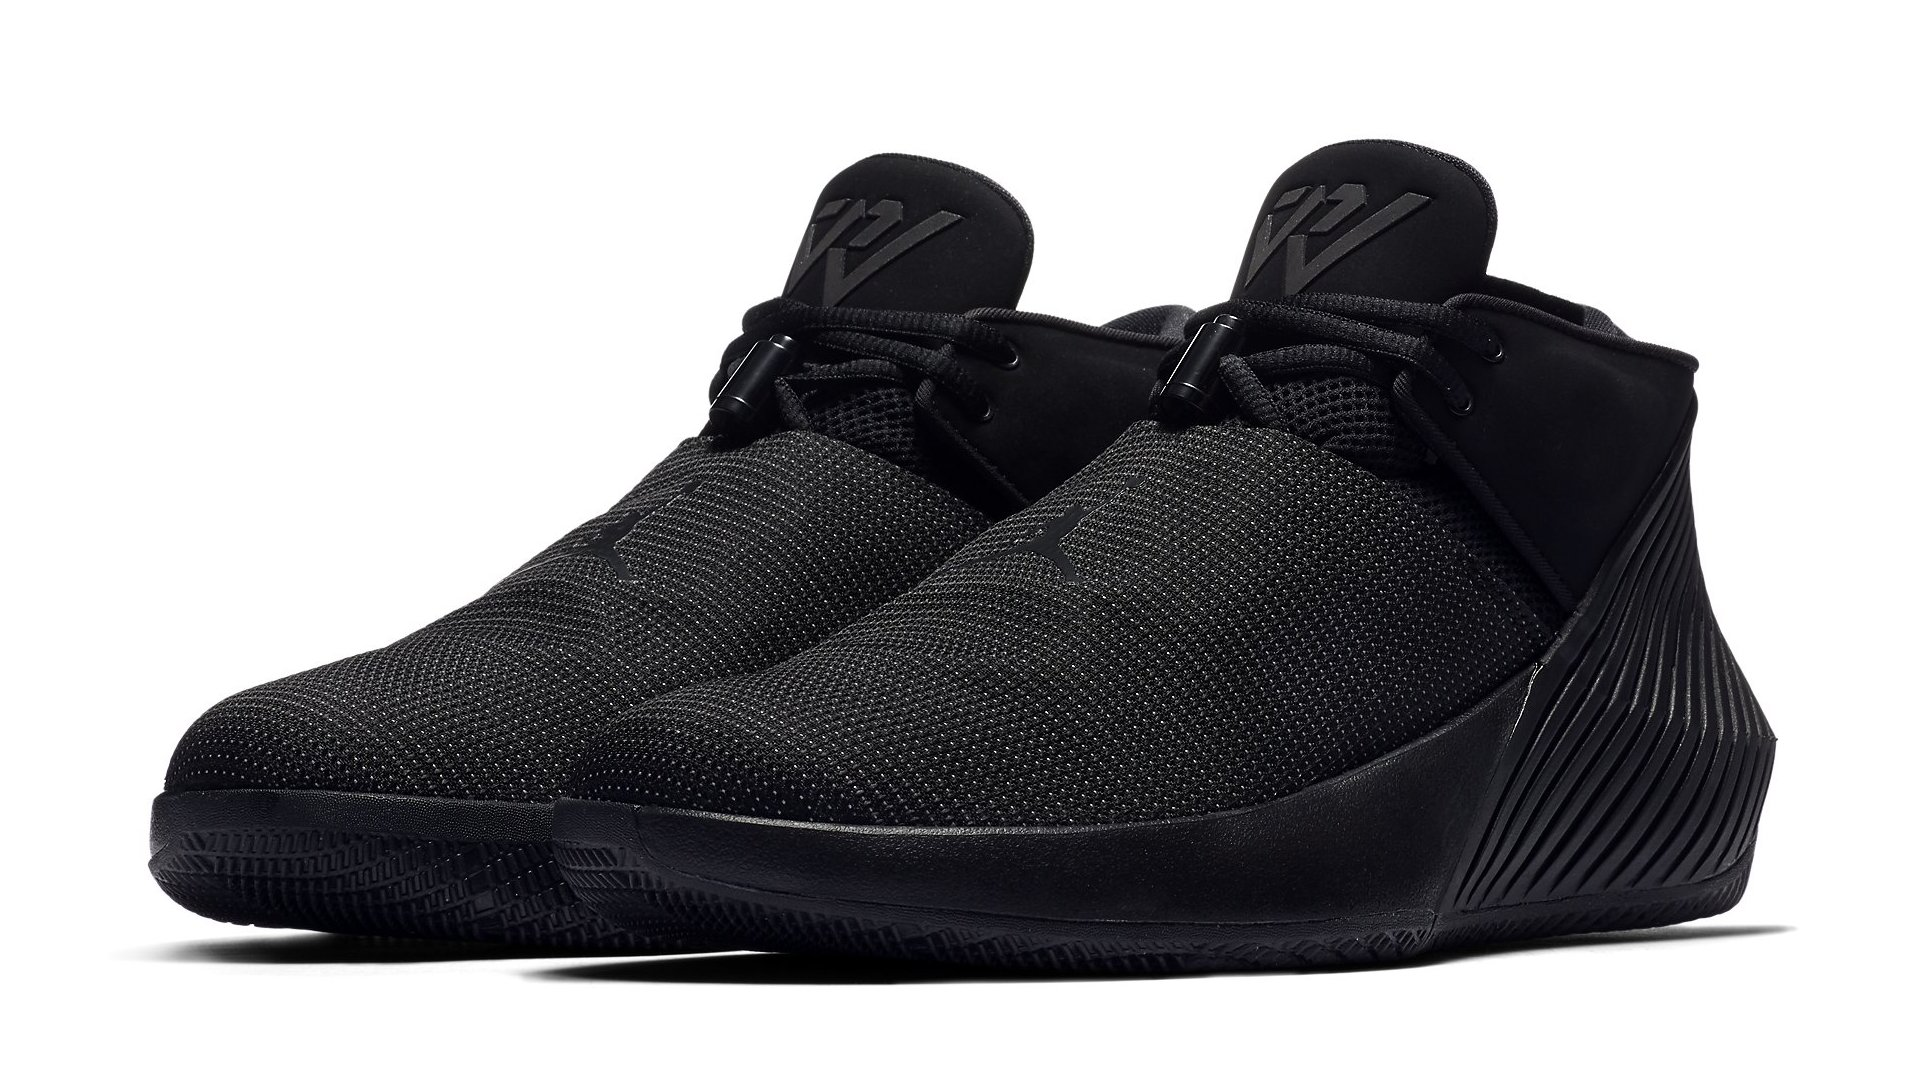 94f255e2d526 Air Jordan Why Not Zer0.1  Triple Black  Release Date July 1